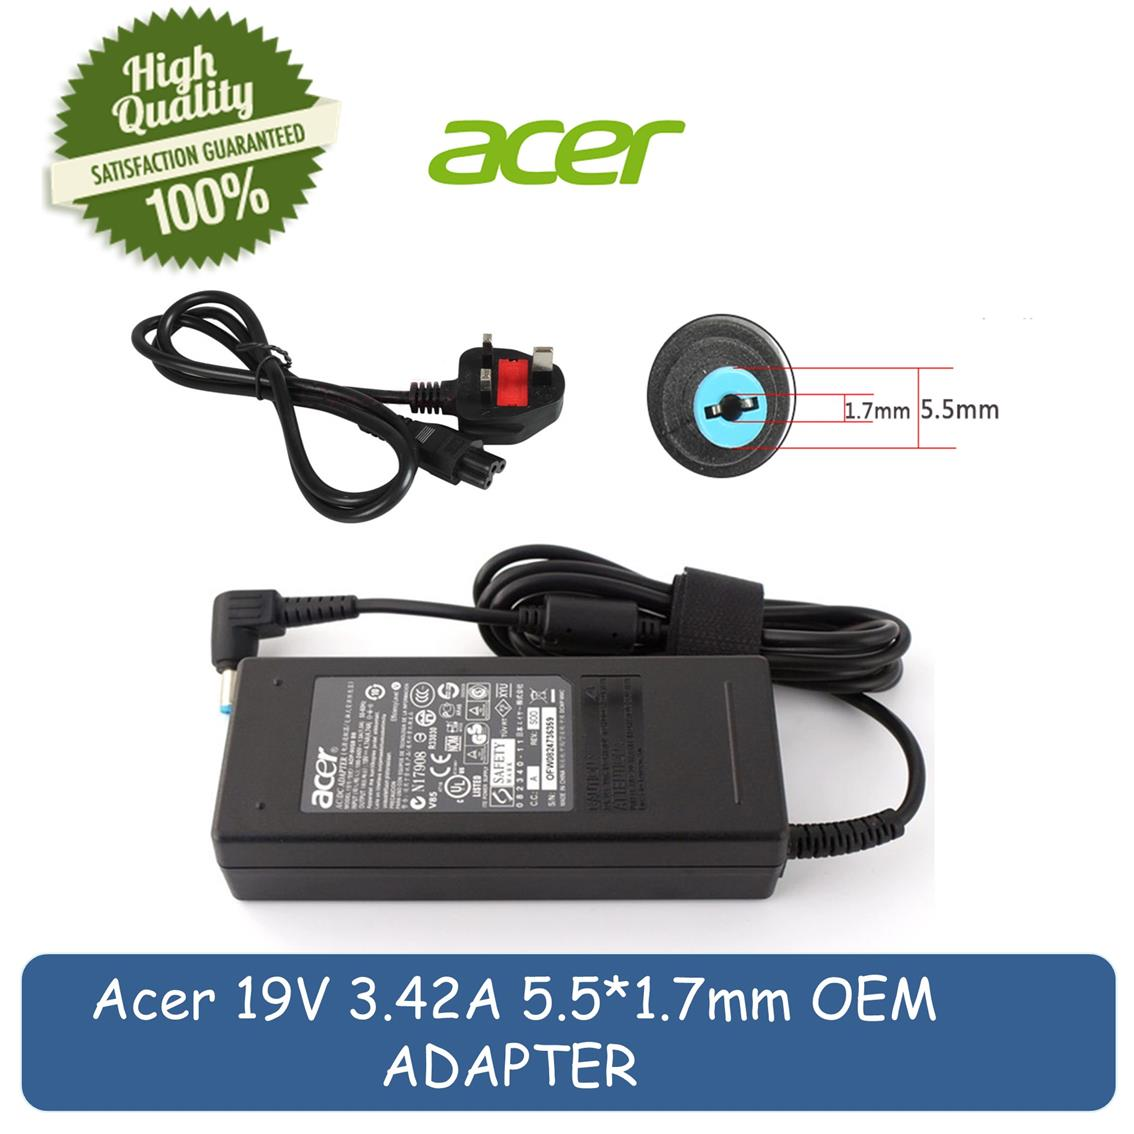 ACER 19V 342A 5517mm 65W Laptop AC Charger Adapter